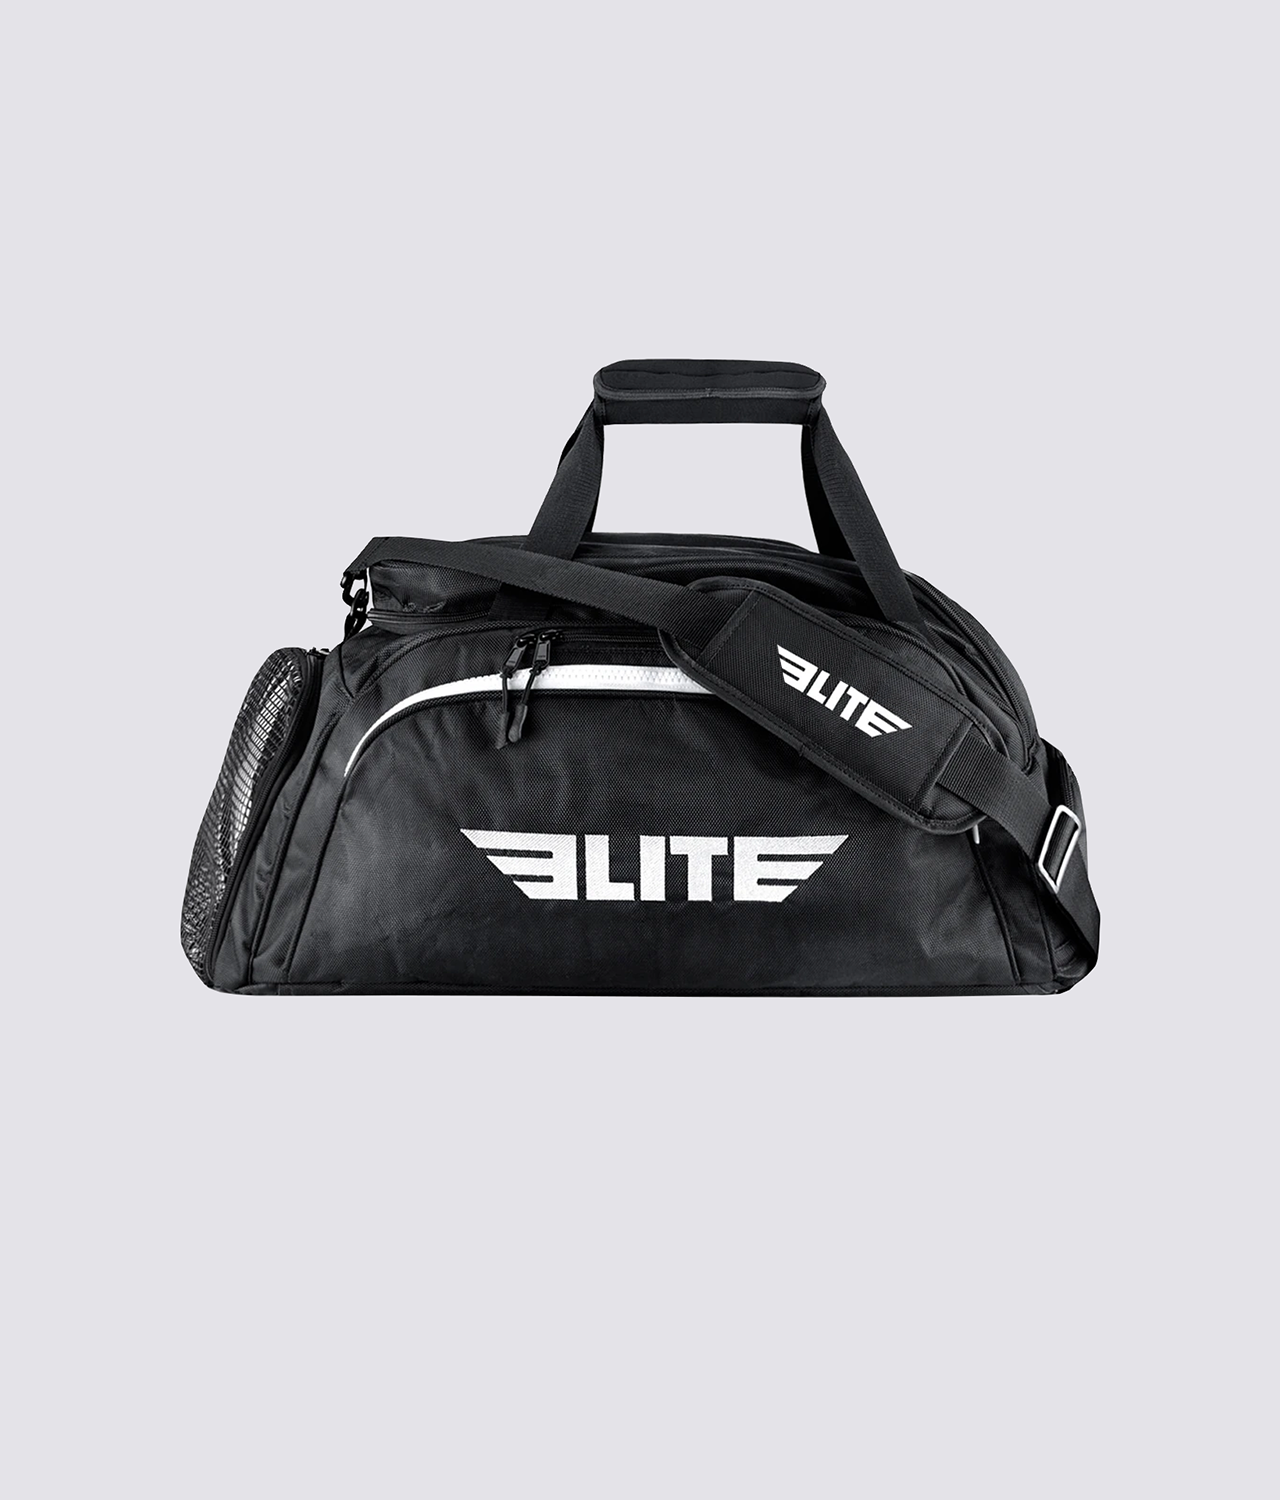 Elite Sports Warrior Series Black Large Duffel MMA Gear Gym Bag & Backpack